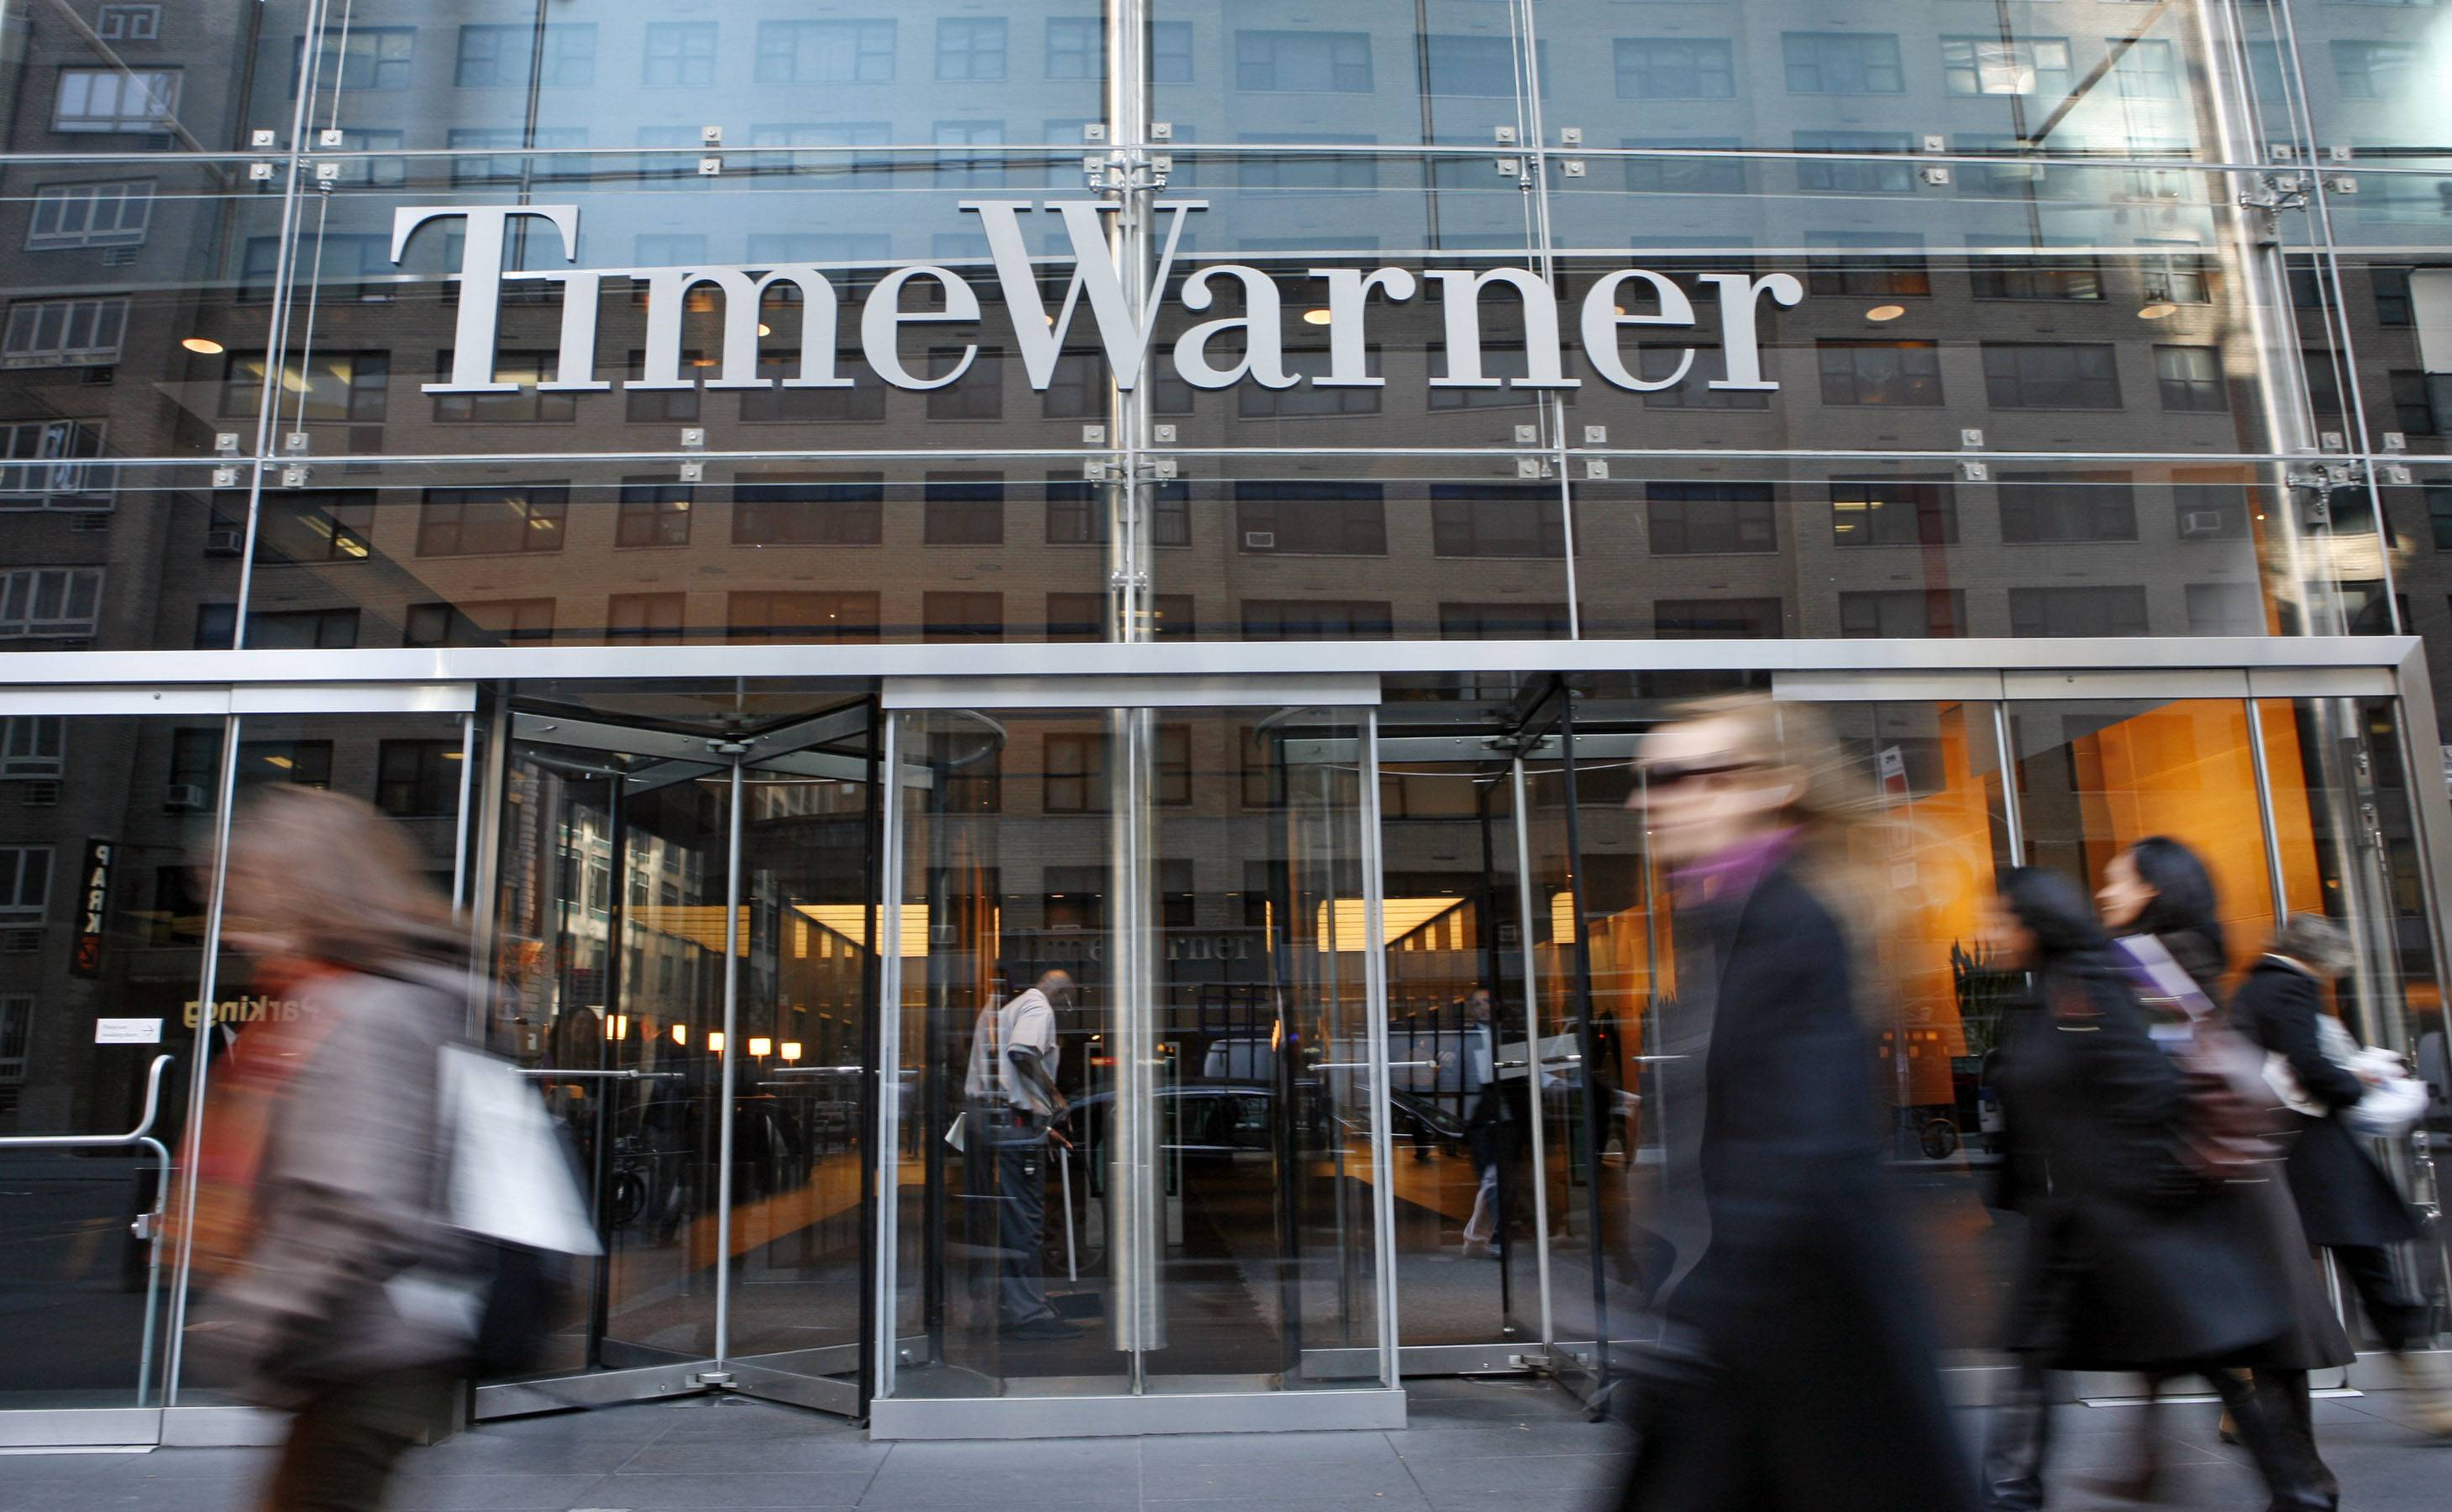 Time Warner Inc. on Wednesday said it has rejected a takeover bid from Twenty-First Century Fox and says it has no interest in further discussions with Rupert Murdoch's media entertainment giant.